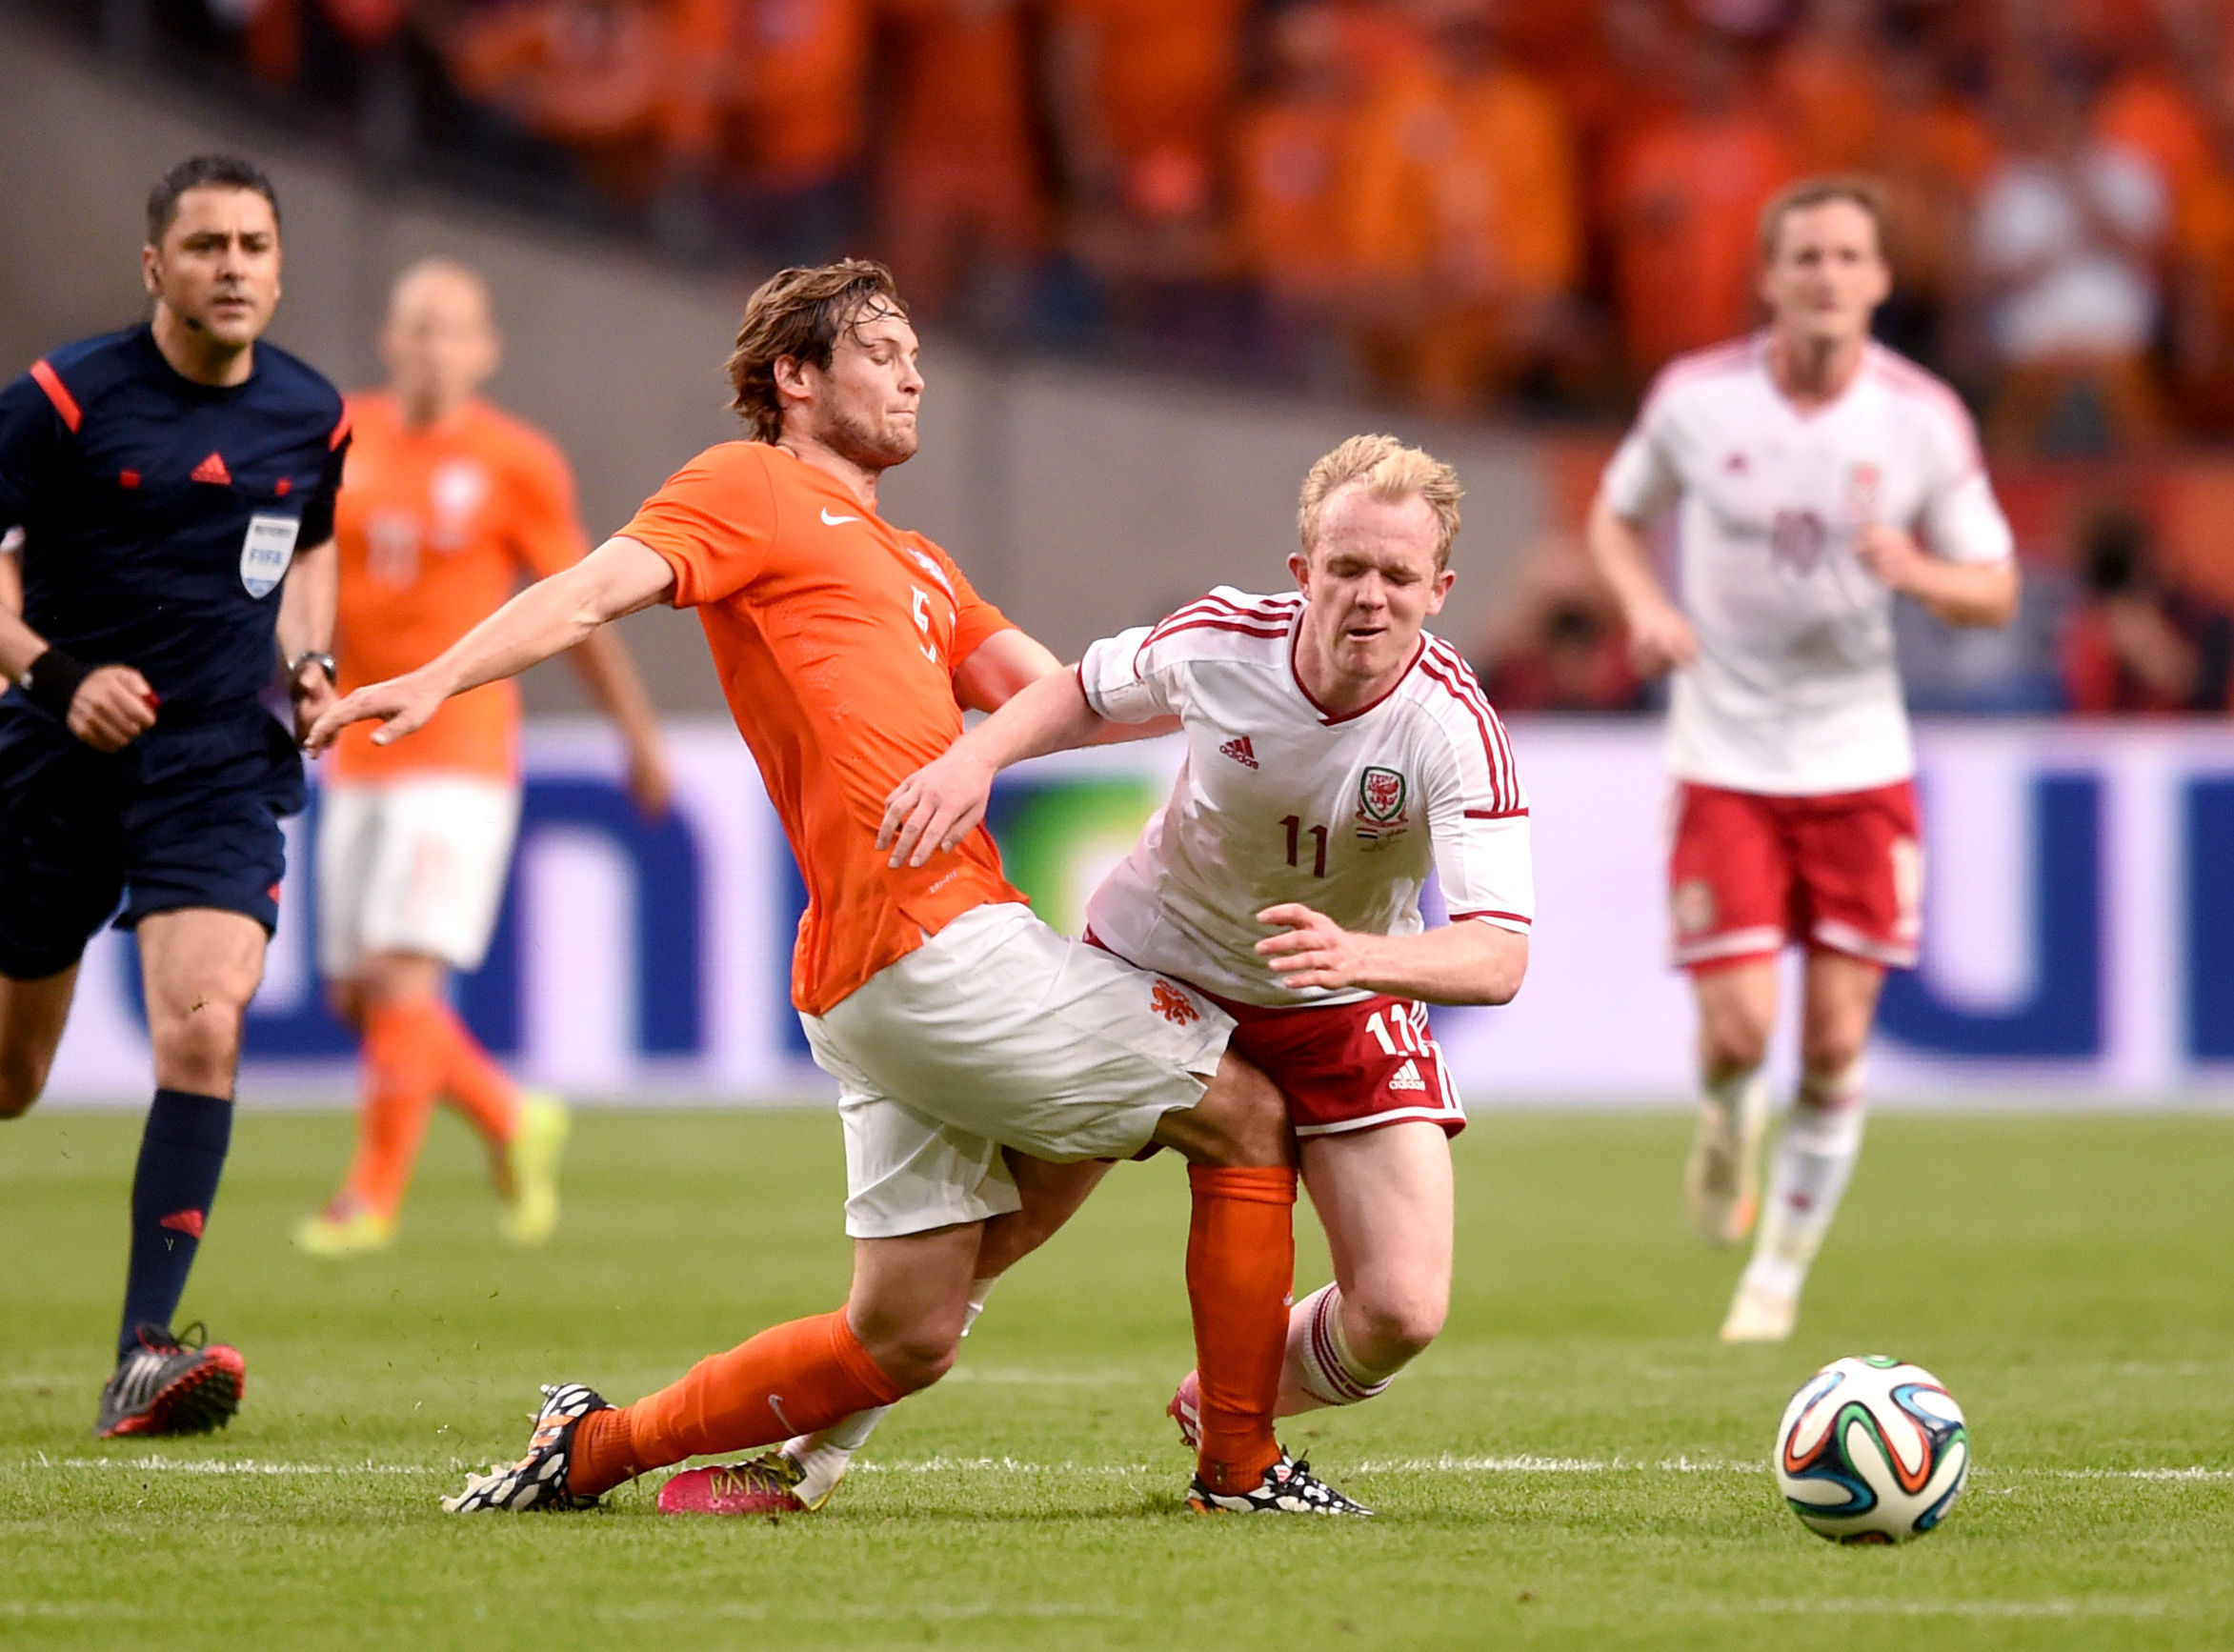 Clinical touch of the Dutch sees Wales defeated in Amsterdam